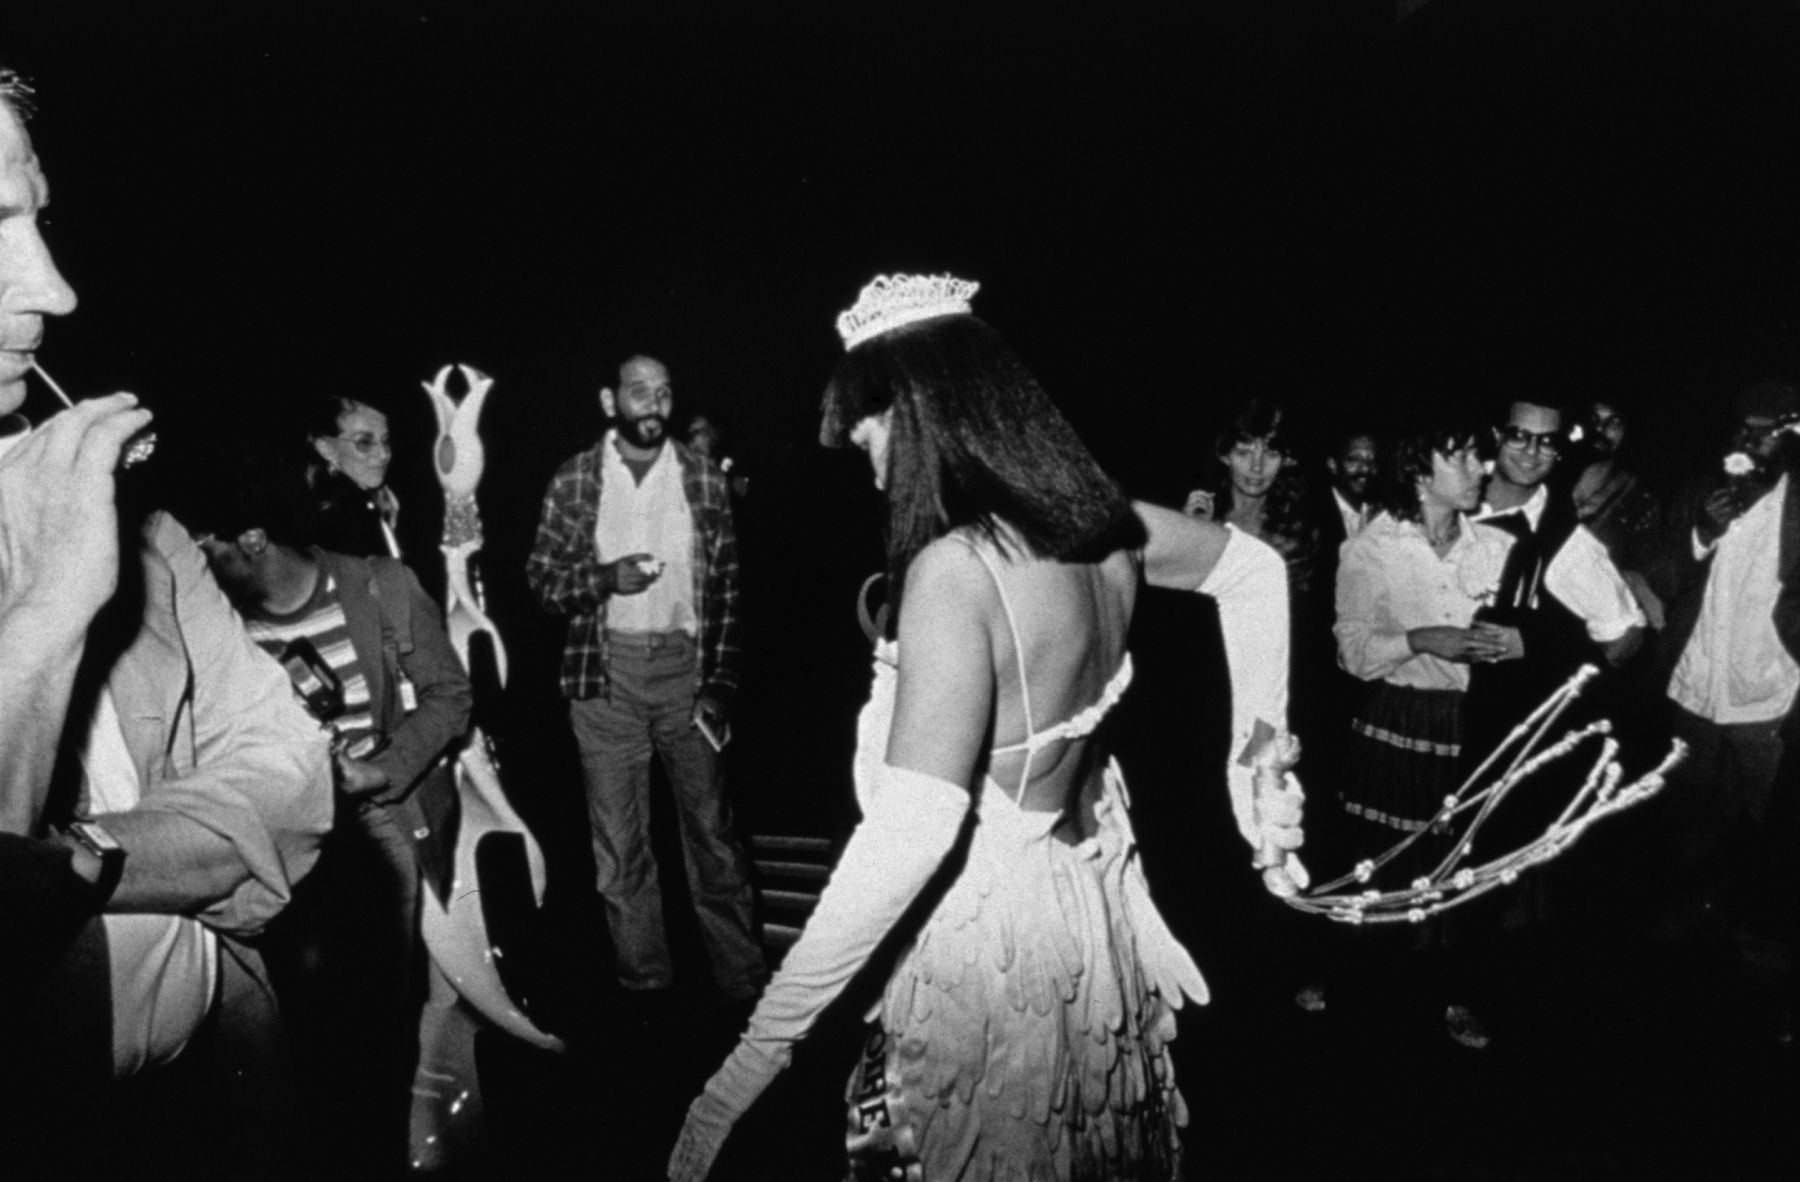 Untitled (Crowd Watches Mlle Bourgeoise Noire Whipping Herself), 1980-83/2009, Silver gelatin fiber print